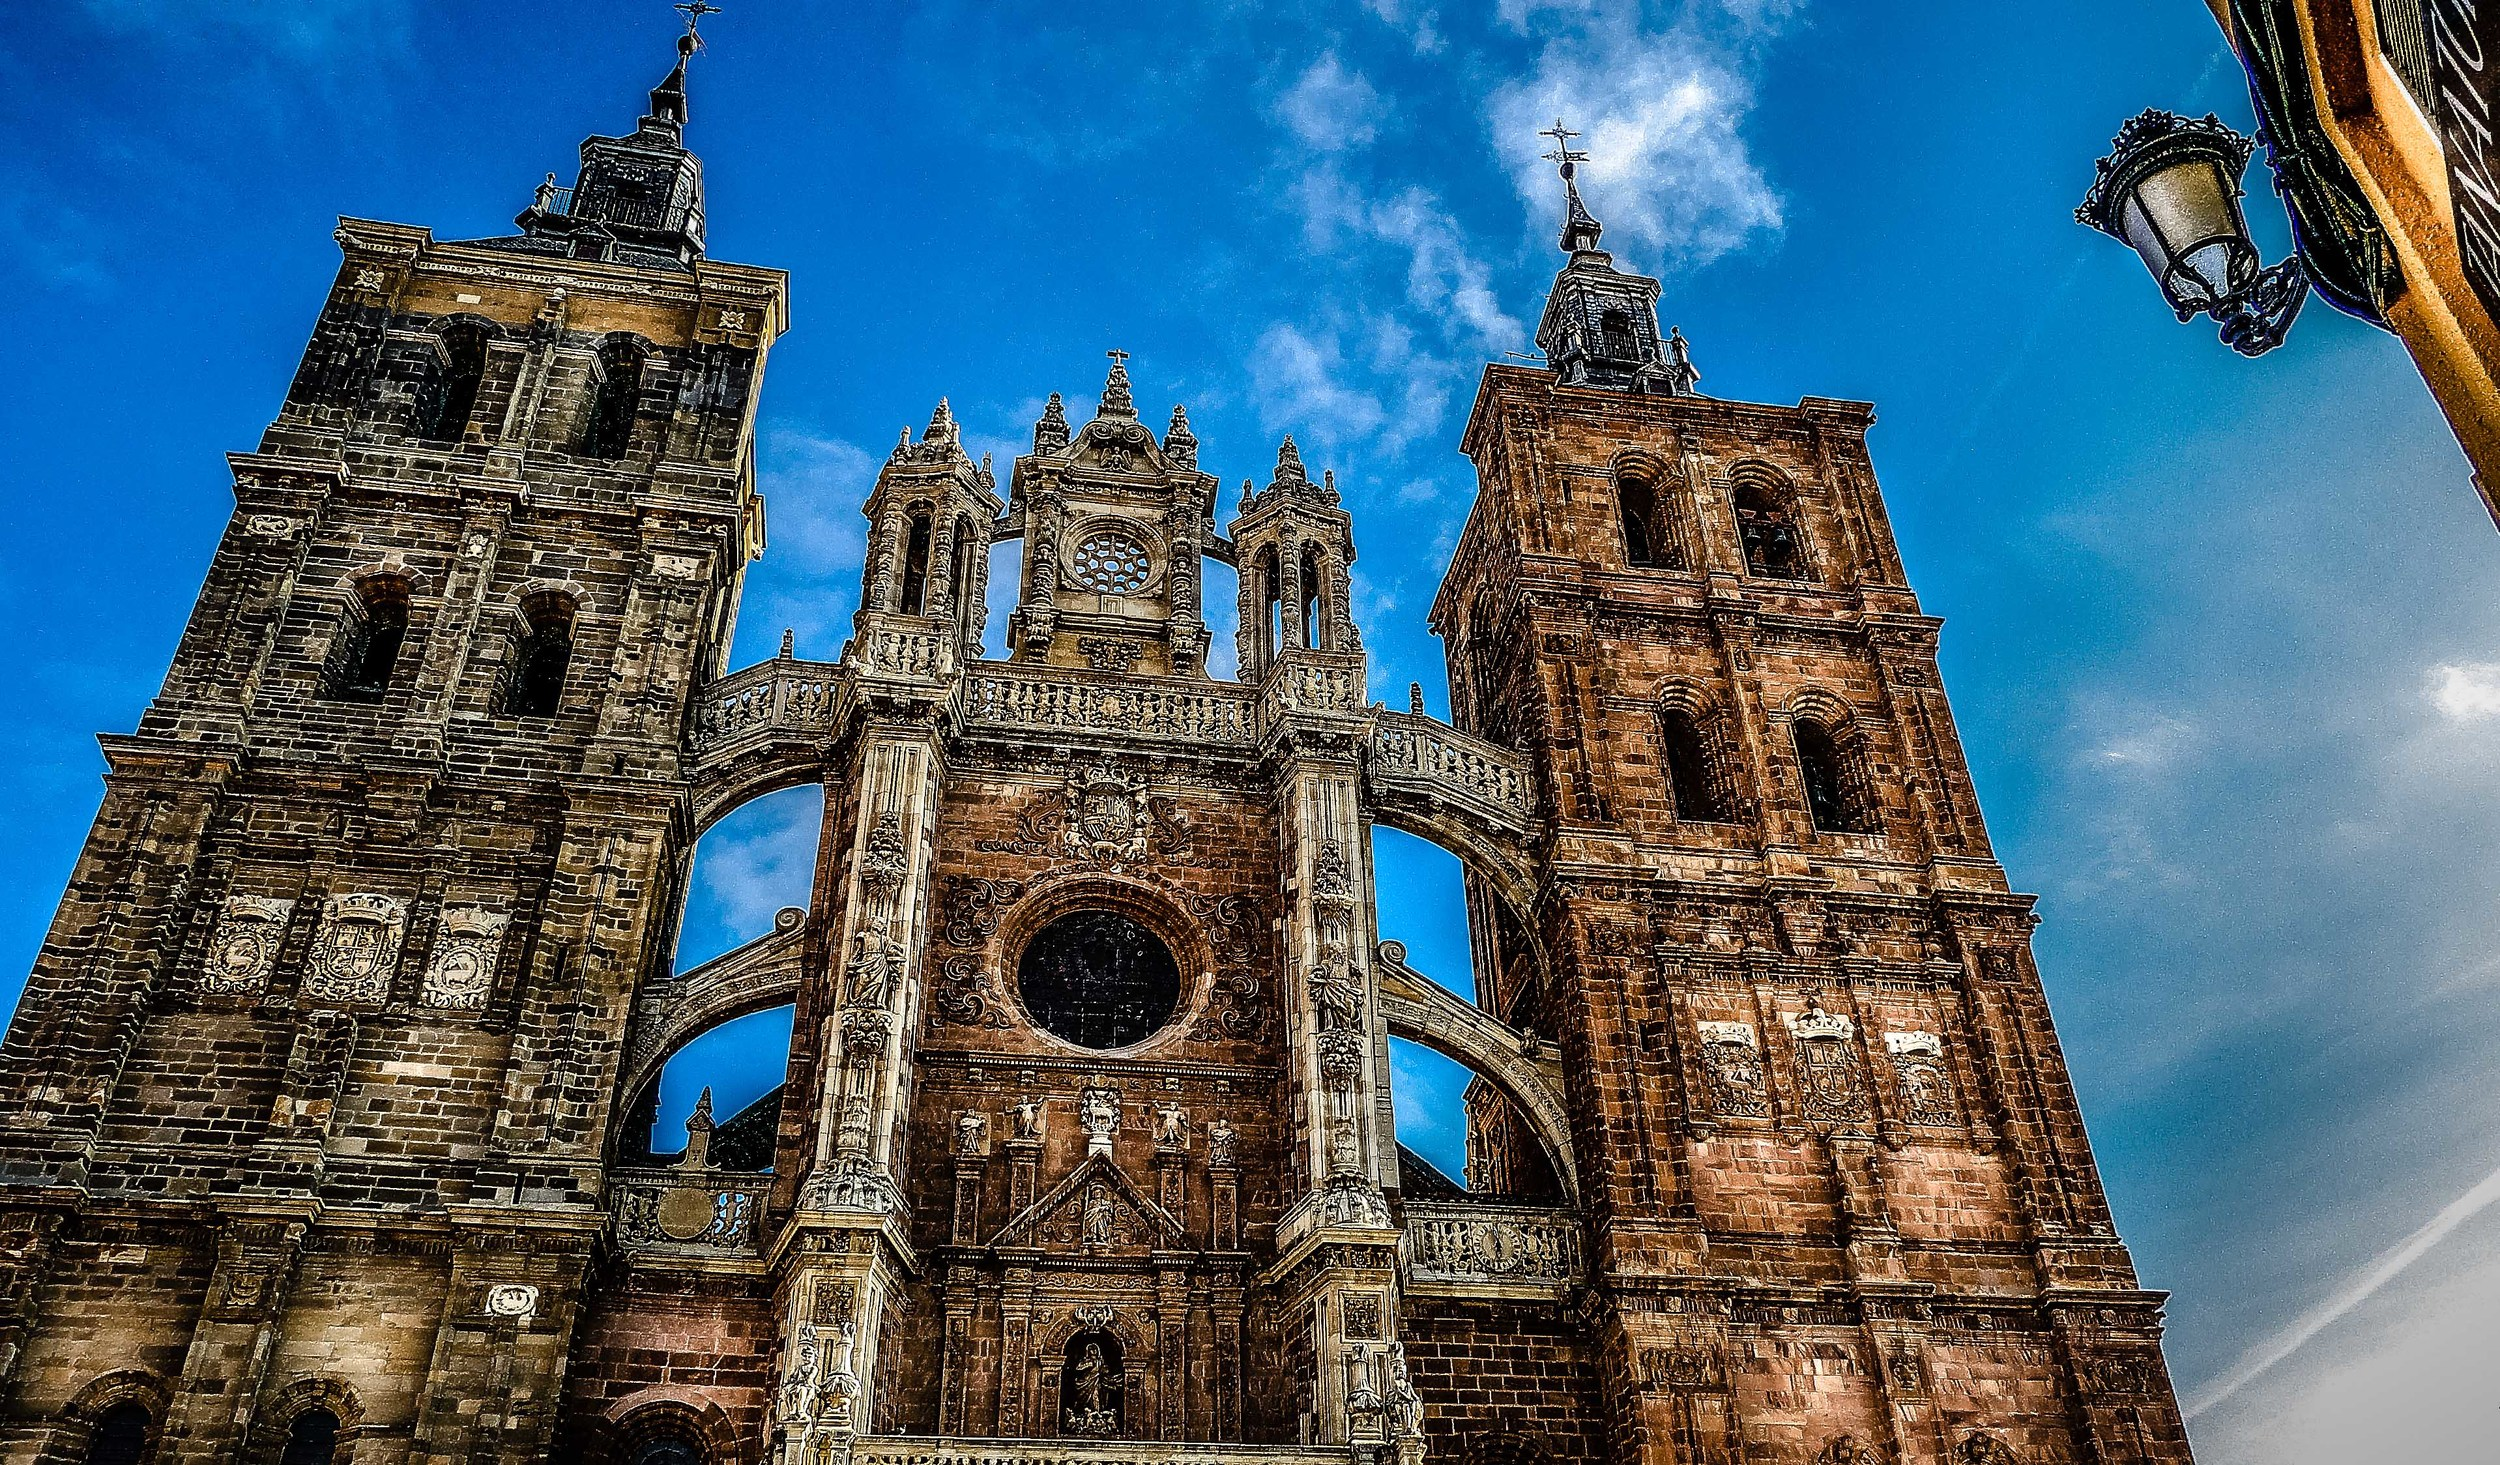 The Cathedral in Astorga